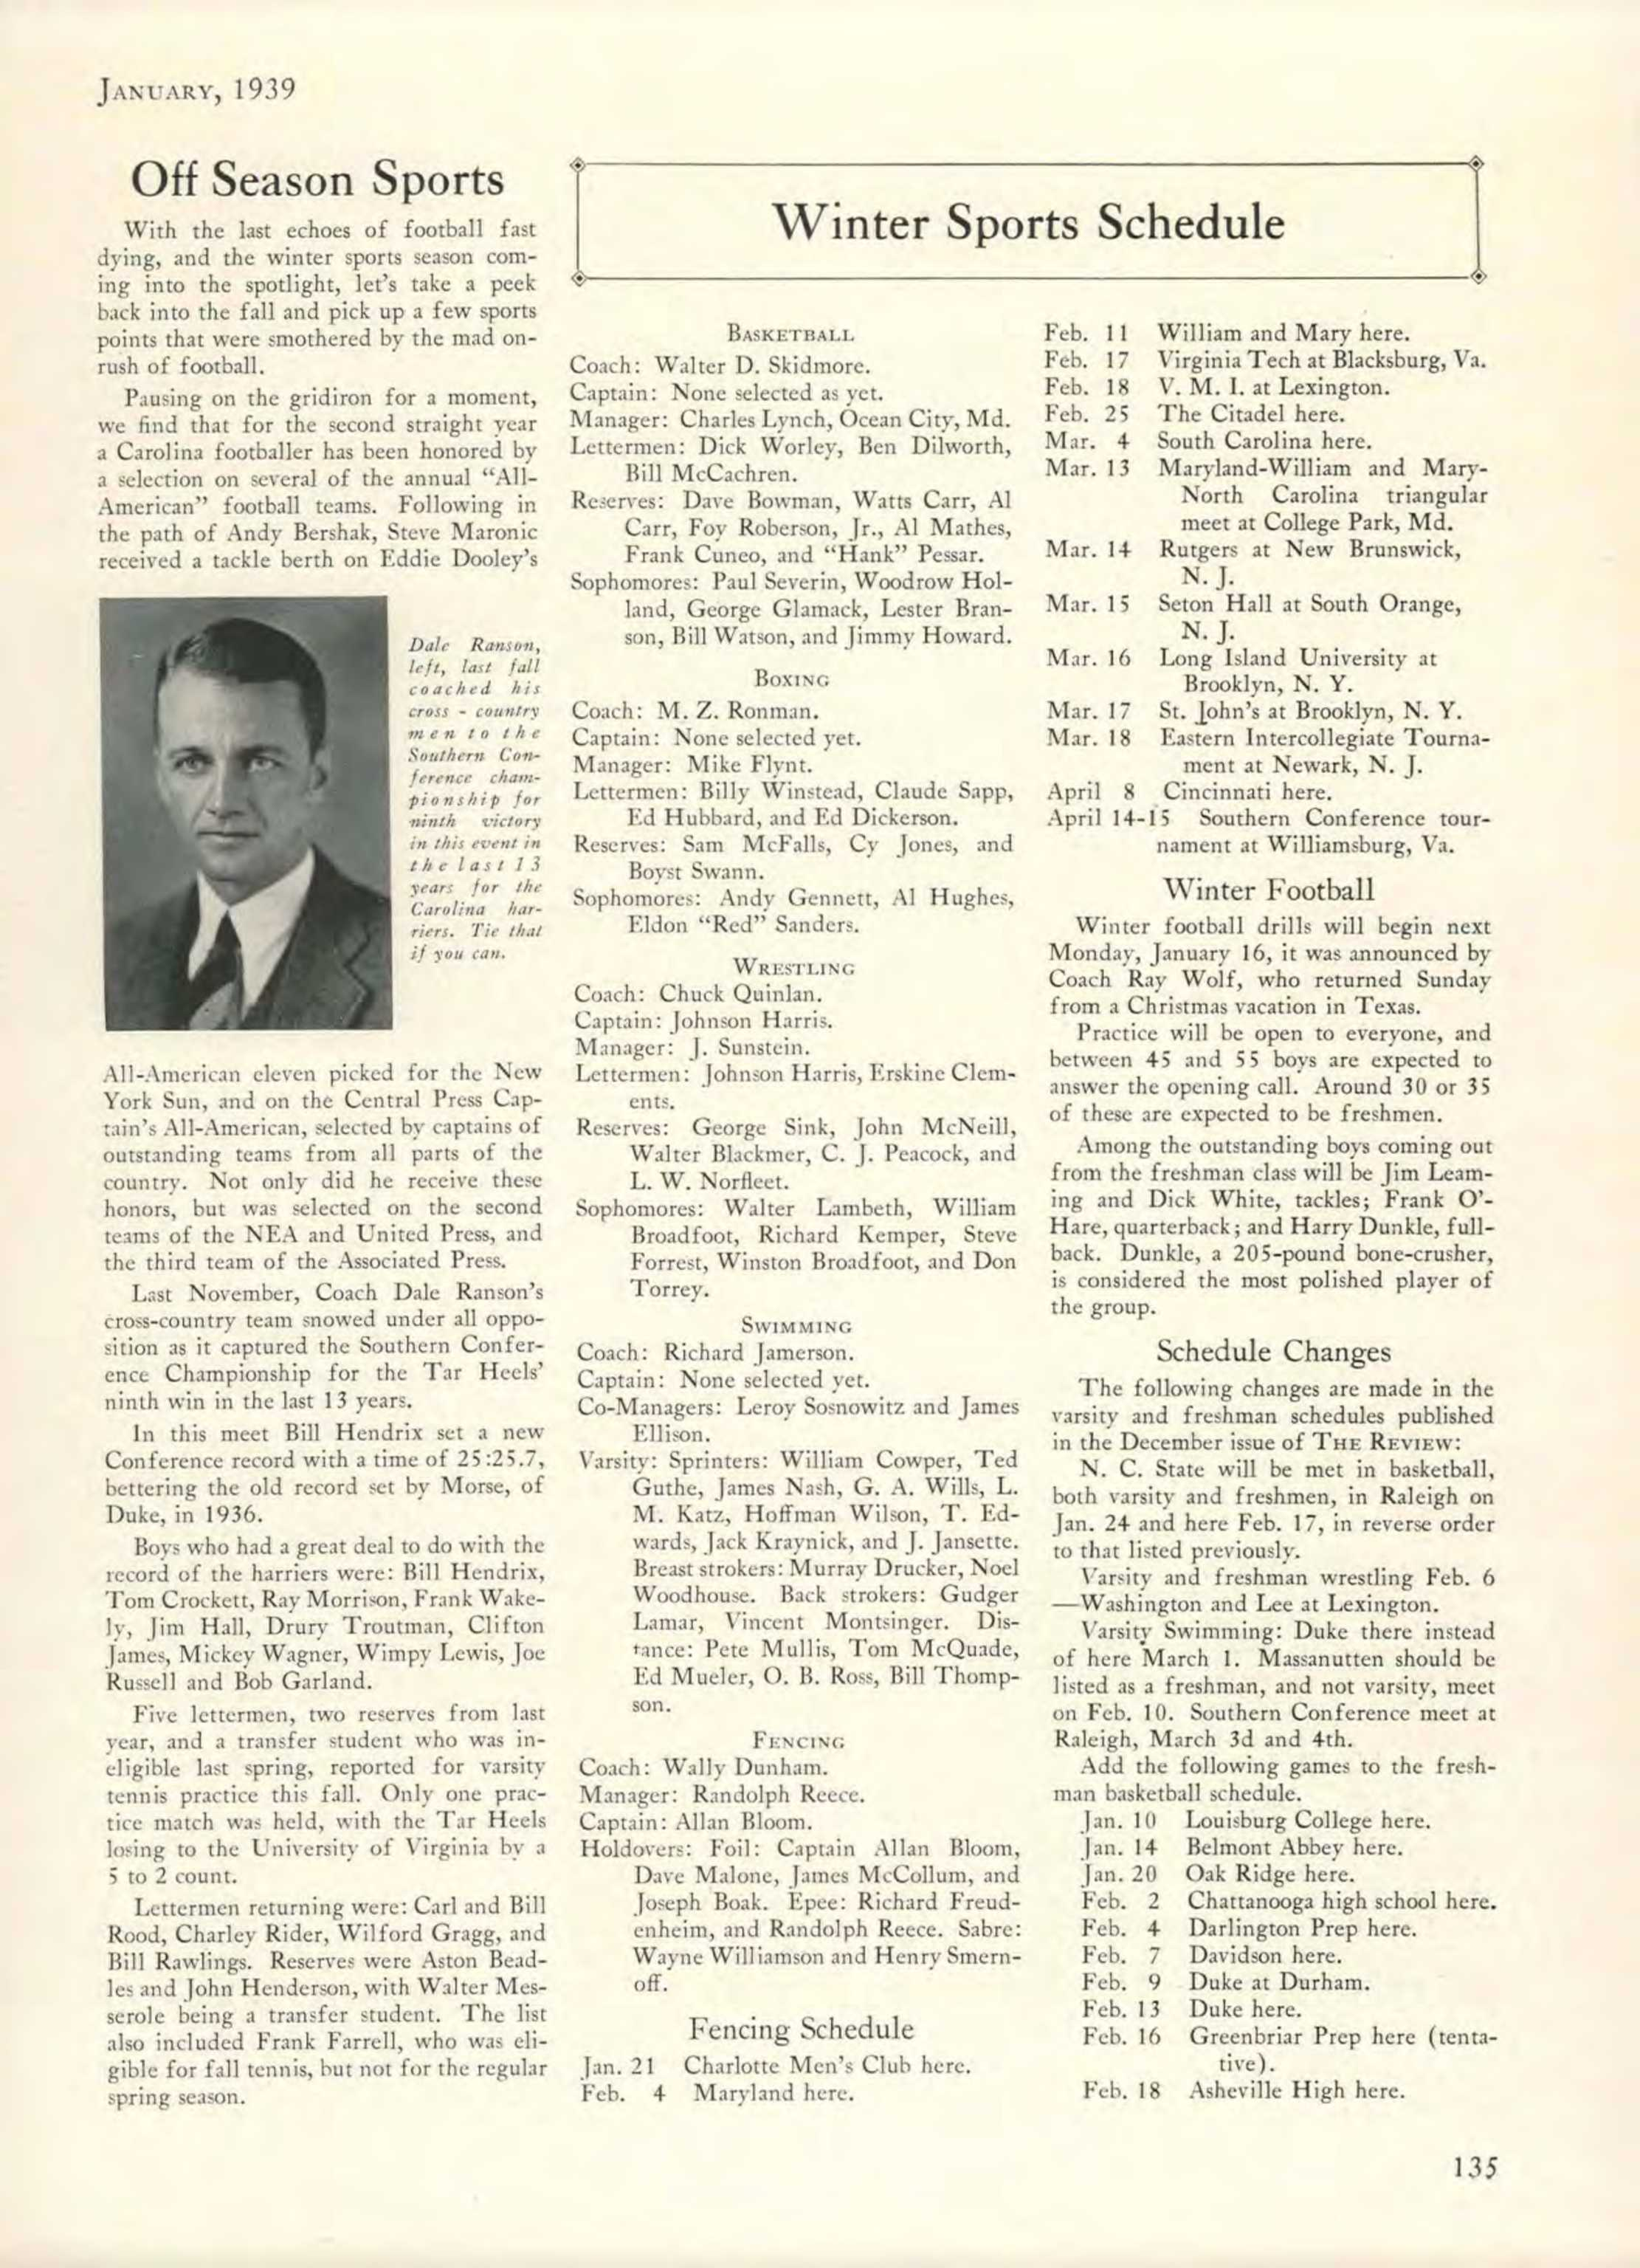 Carolina Alumni Review - January 1939 - page 136